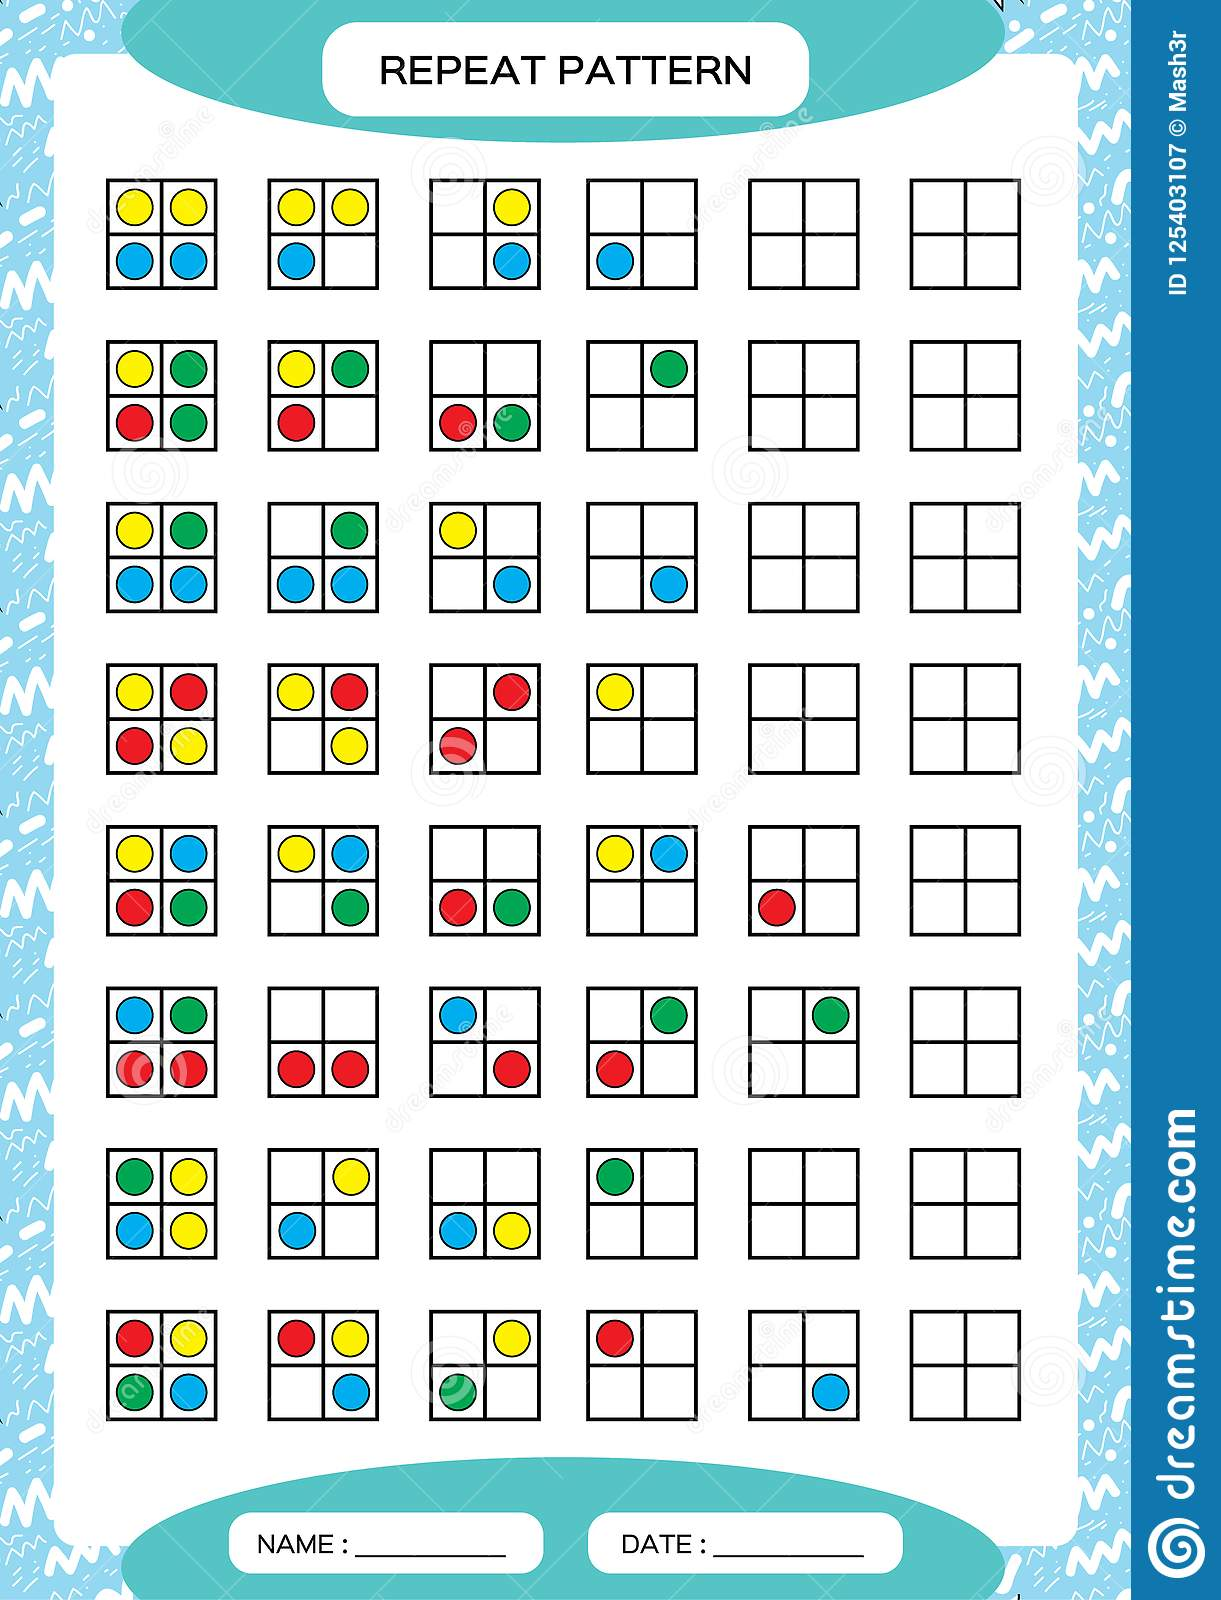 Repeat Pattern Square Grid With Colorfull Circles